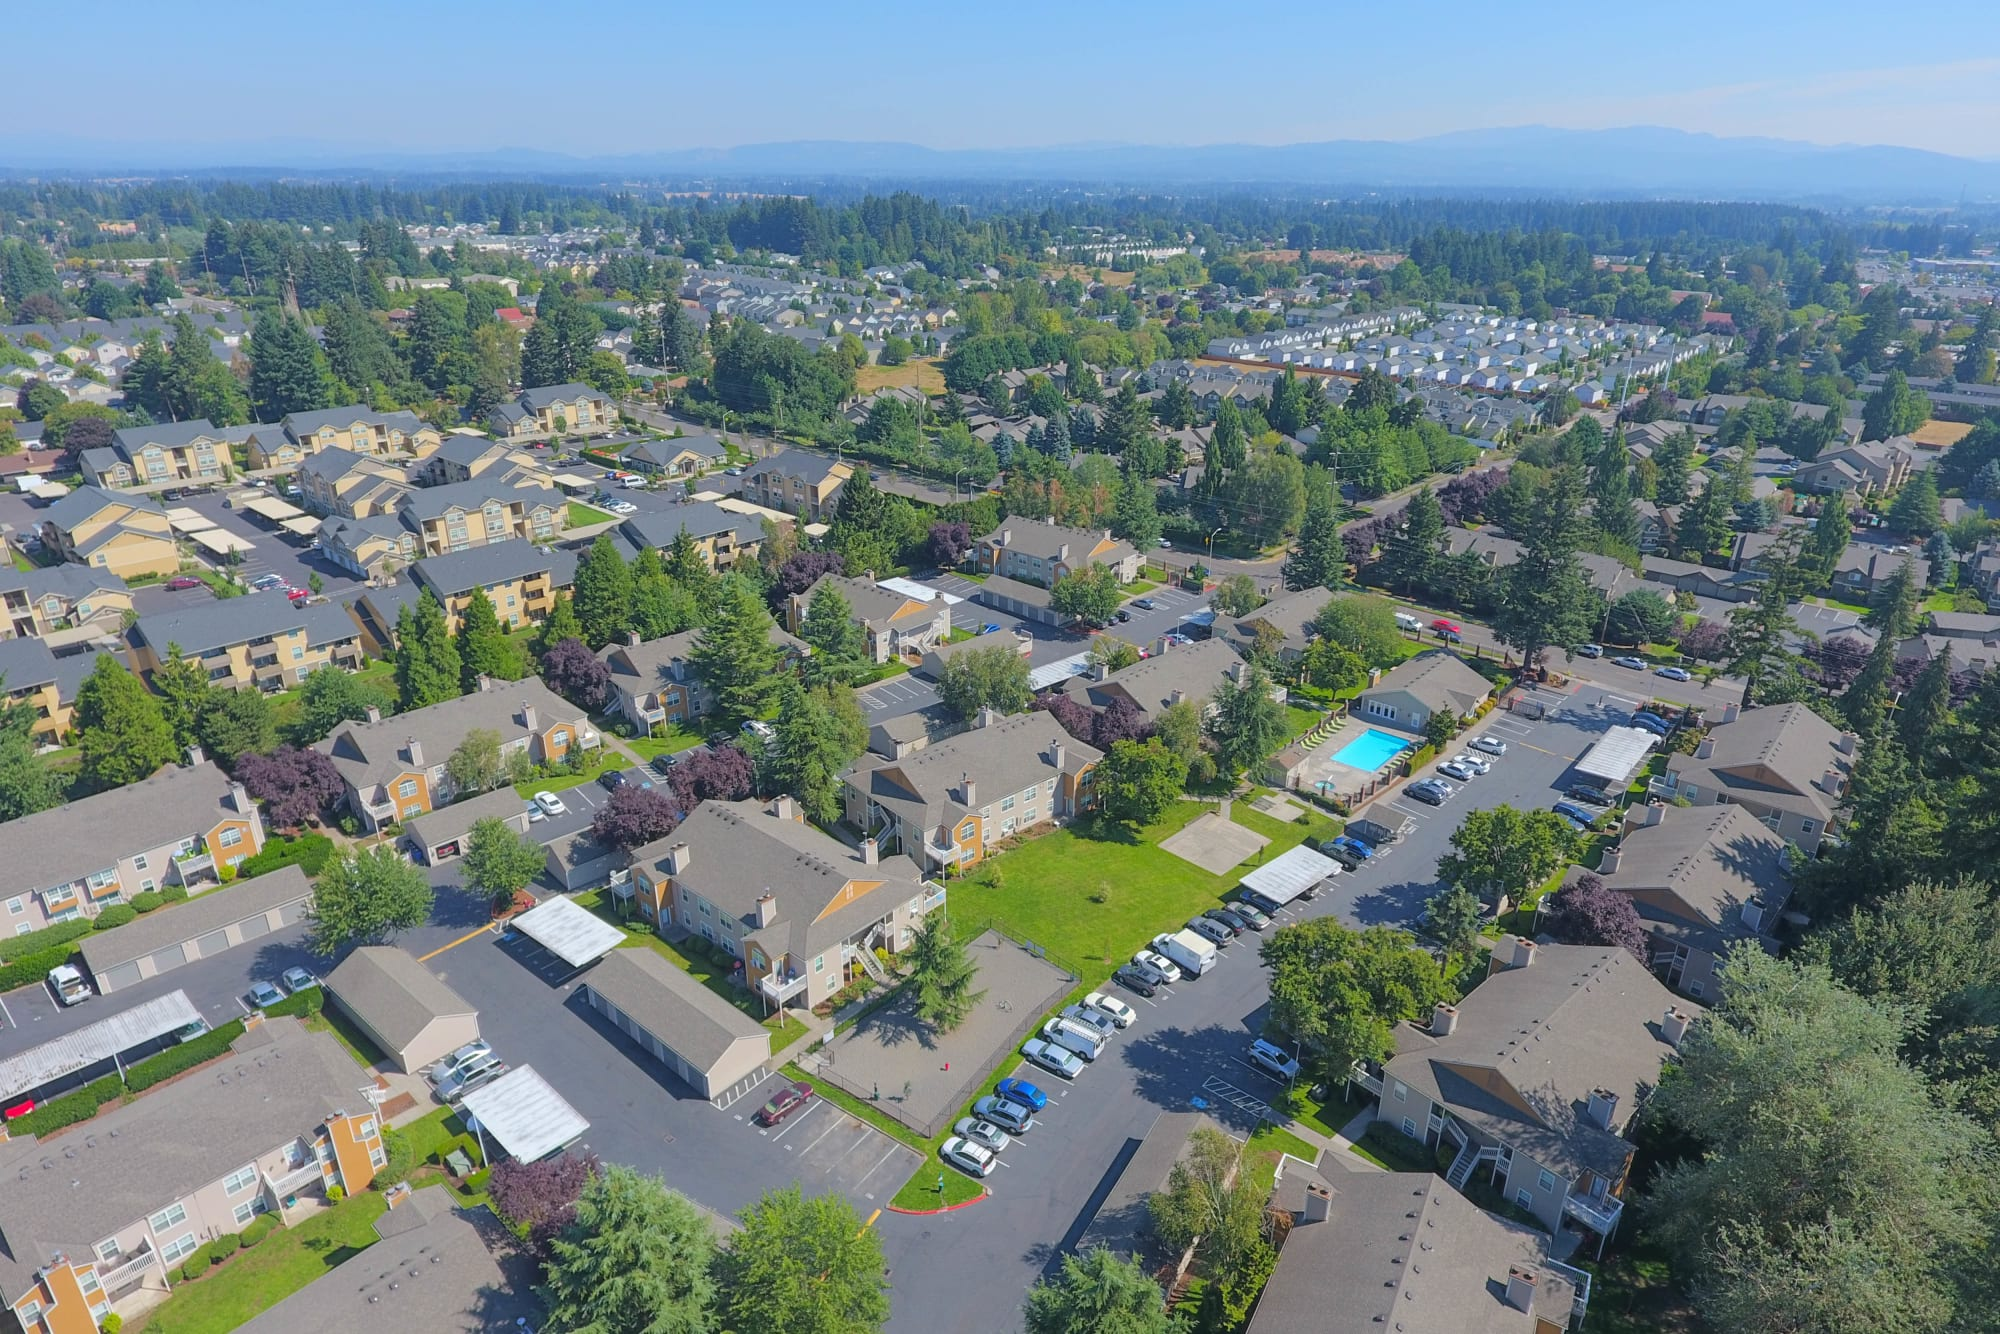 An aerial view of the property and surrounding area at Carriage Park Apartments in Vancouver, Washington